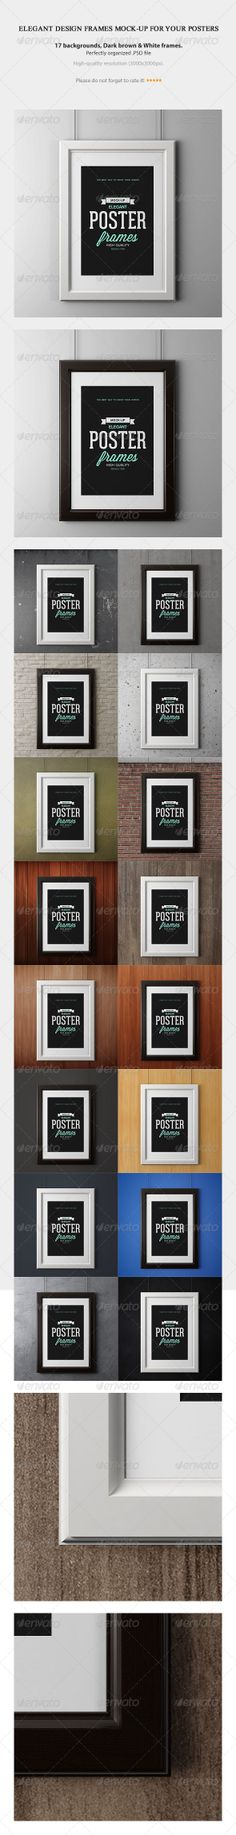 Elegant Design Frames MOCK-UP For Your Posters - Posters Print